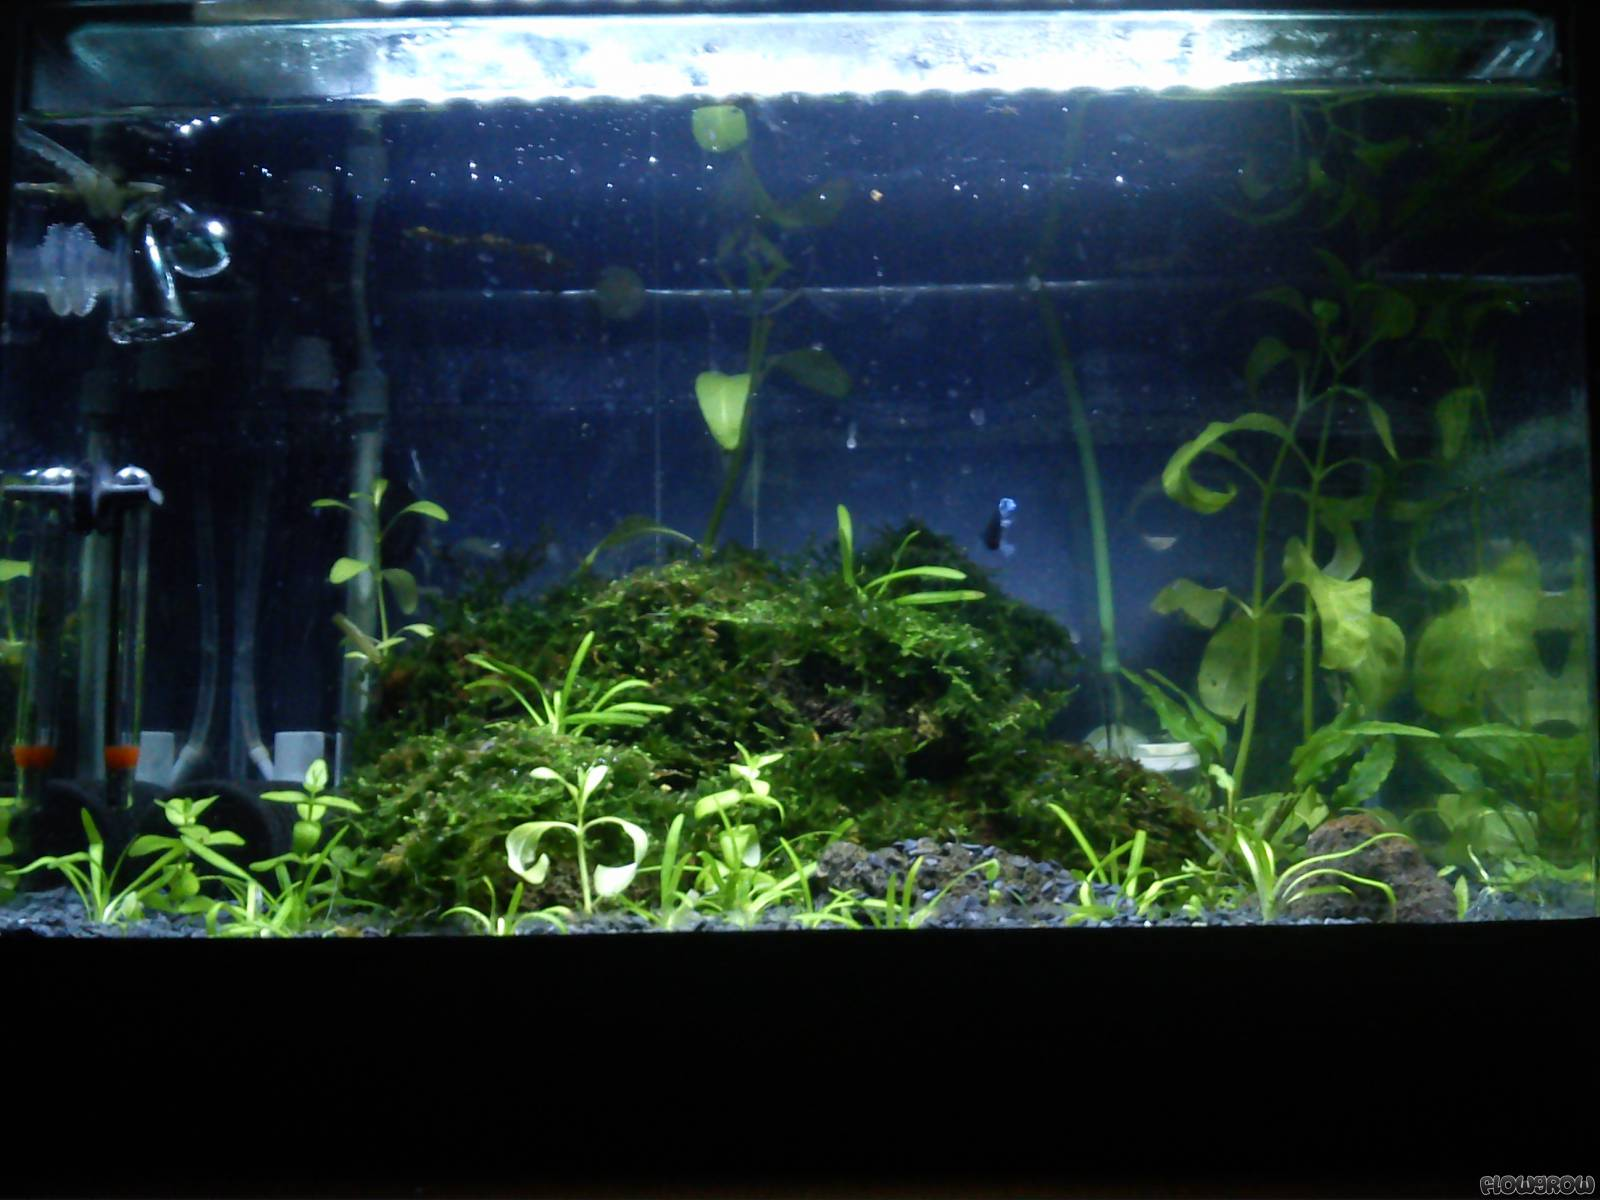 characidano flowgrow aquascape aquarien datenbank. Black Bedroom Furniture Sets. Home Design Ideas